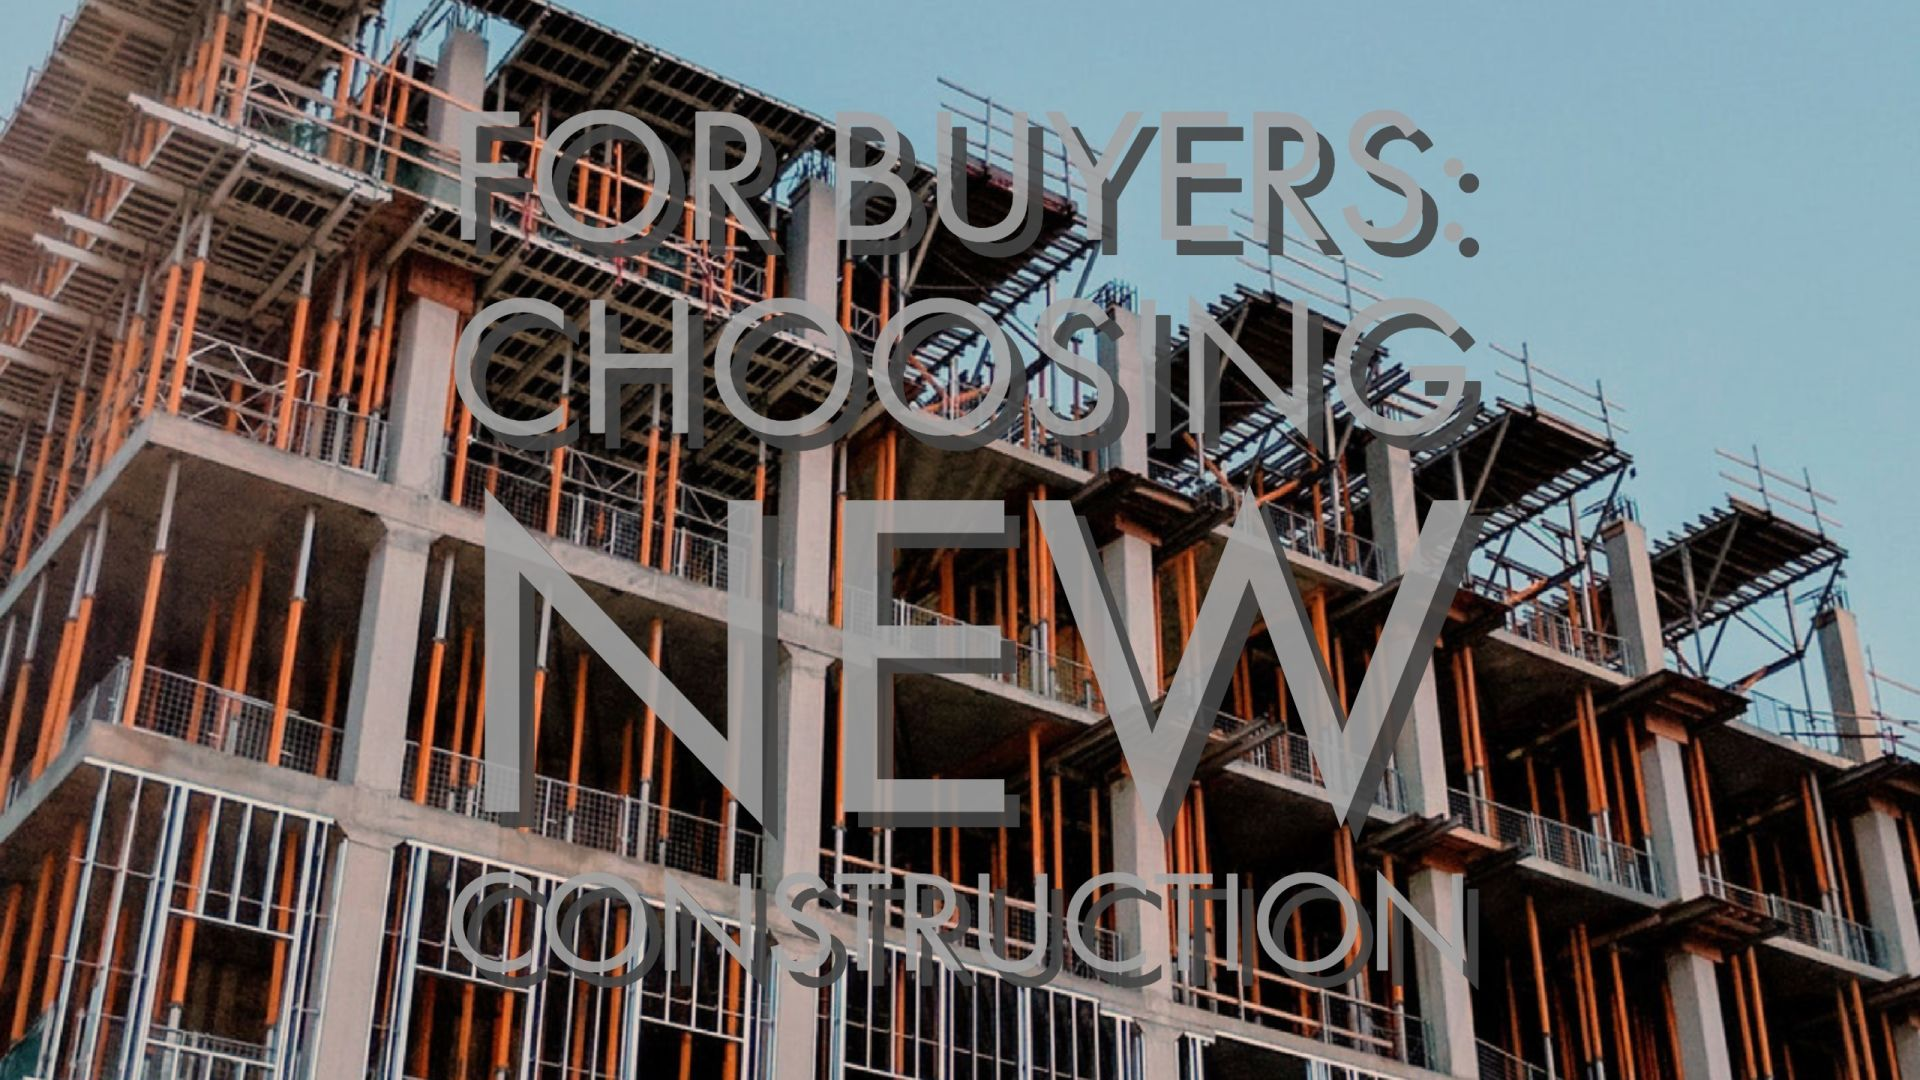 For Buyers: Choosing New Construction